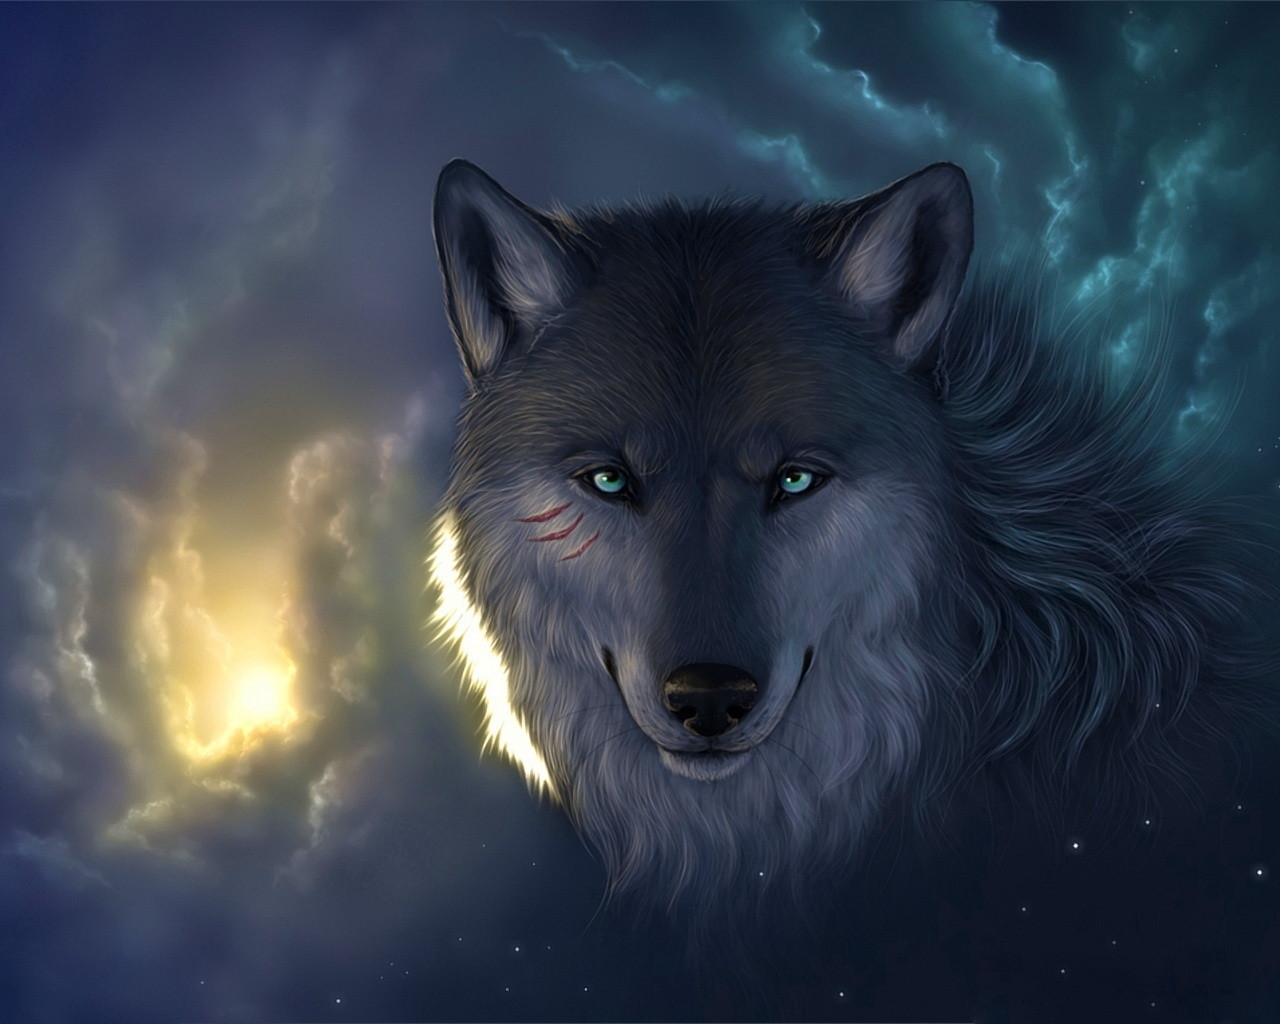 49 ] 3D Wolf Wallpapers On WallpaperSafari